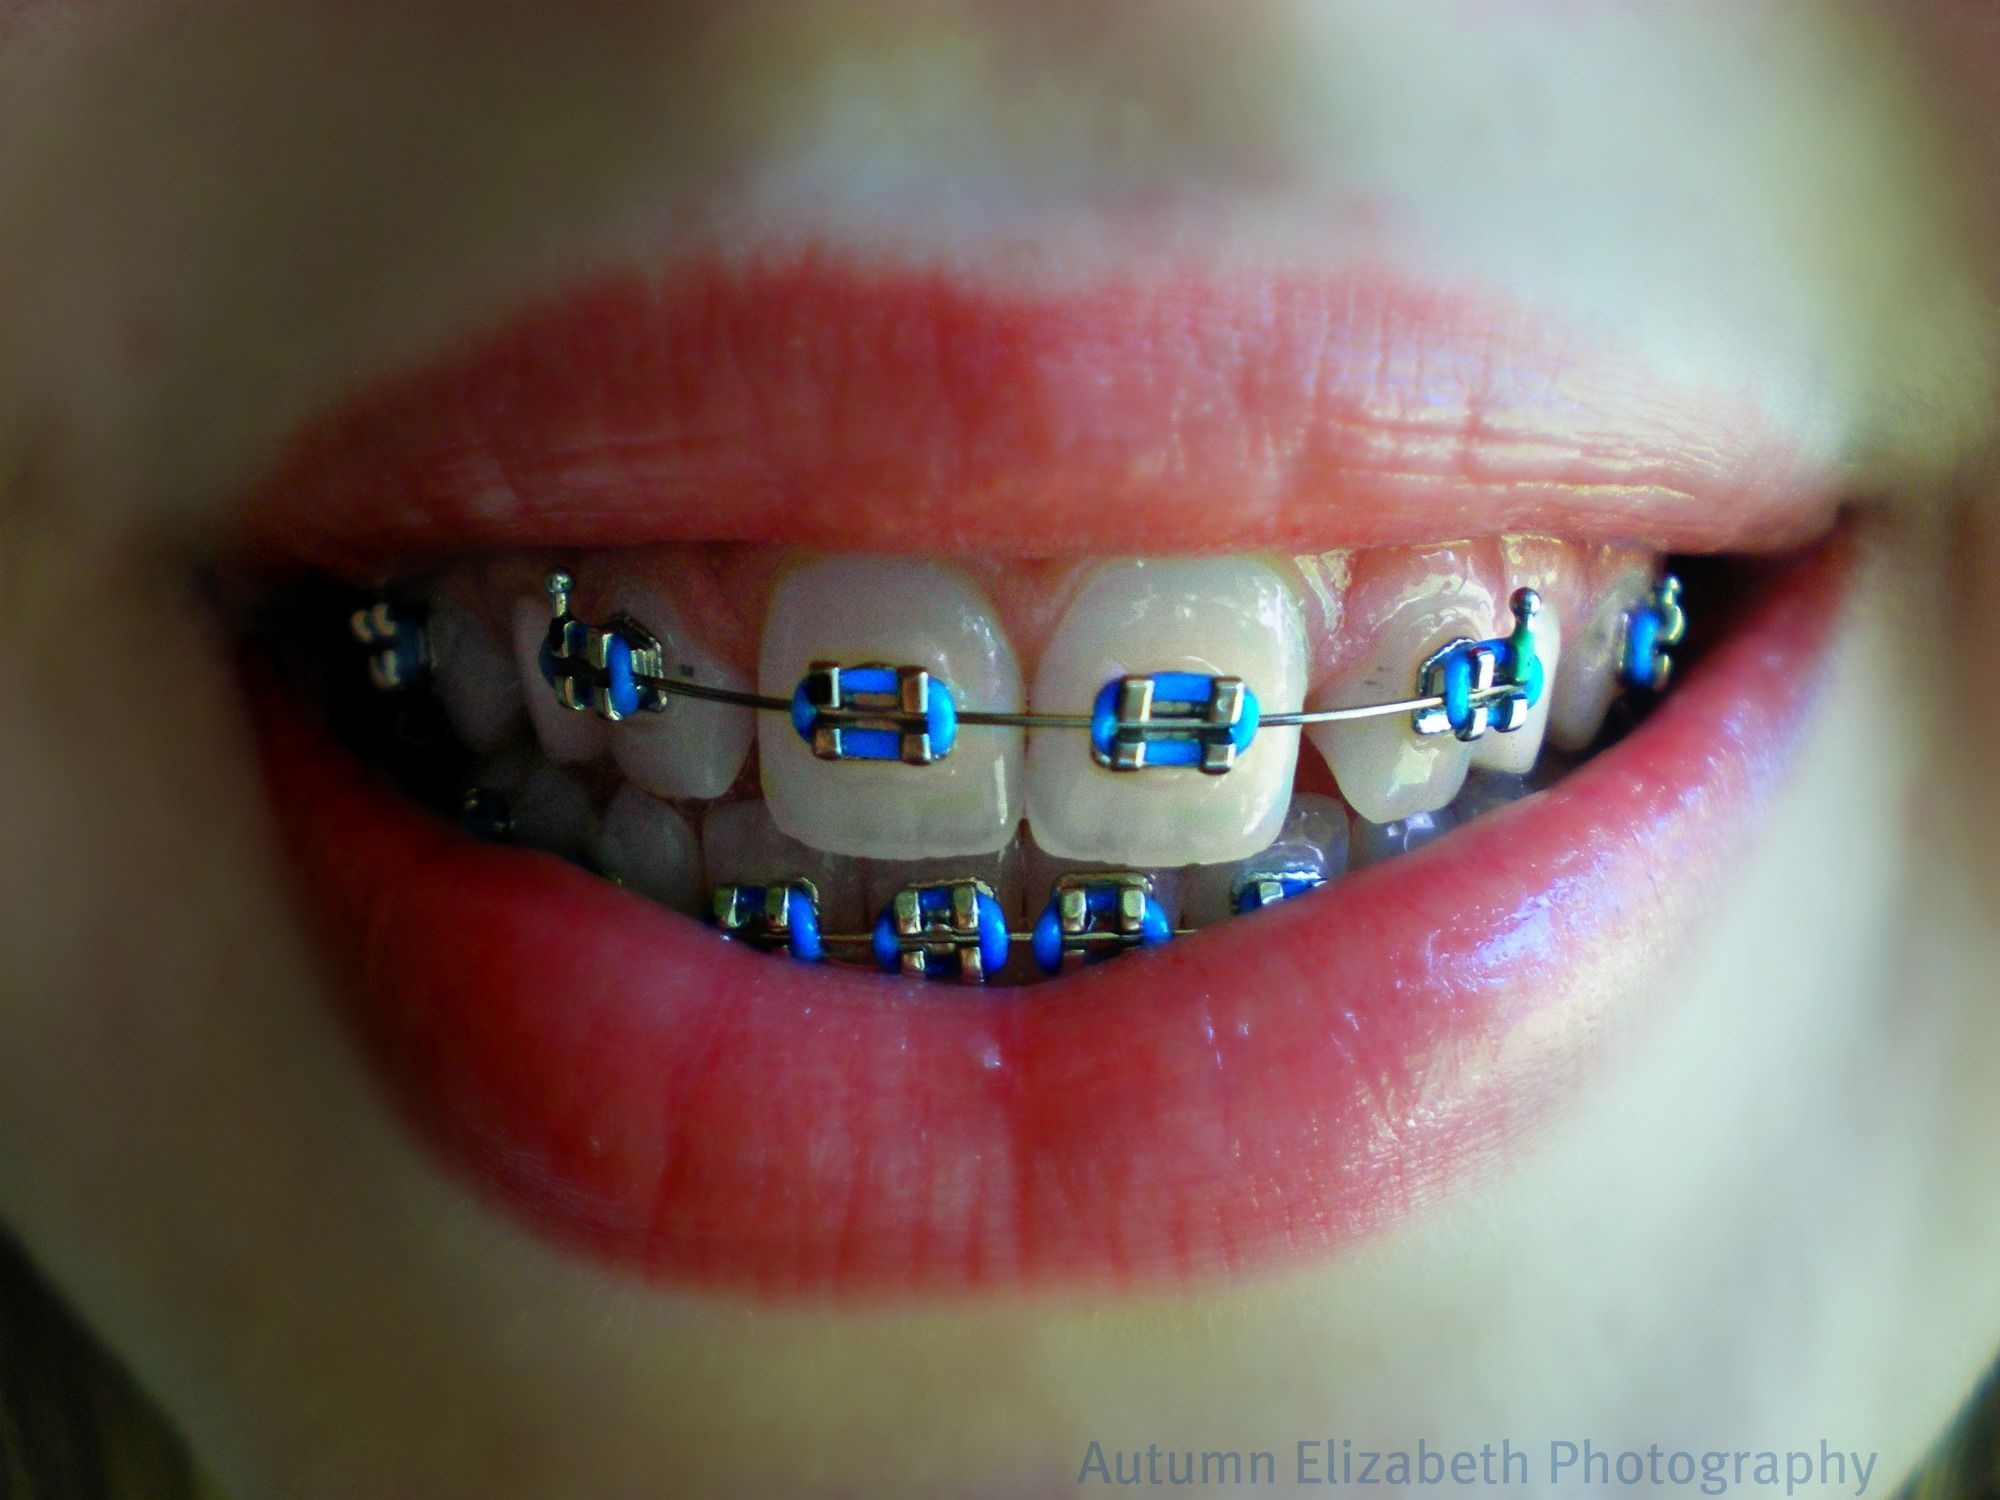 Pin by Professional Fangirl on Braces 🙊👄 Braces colors